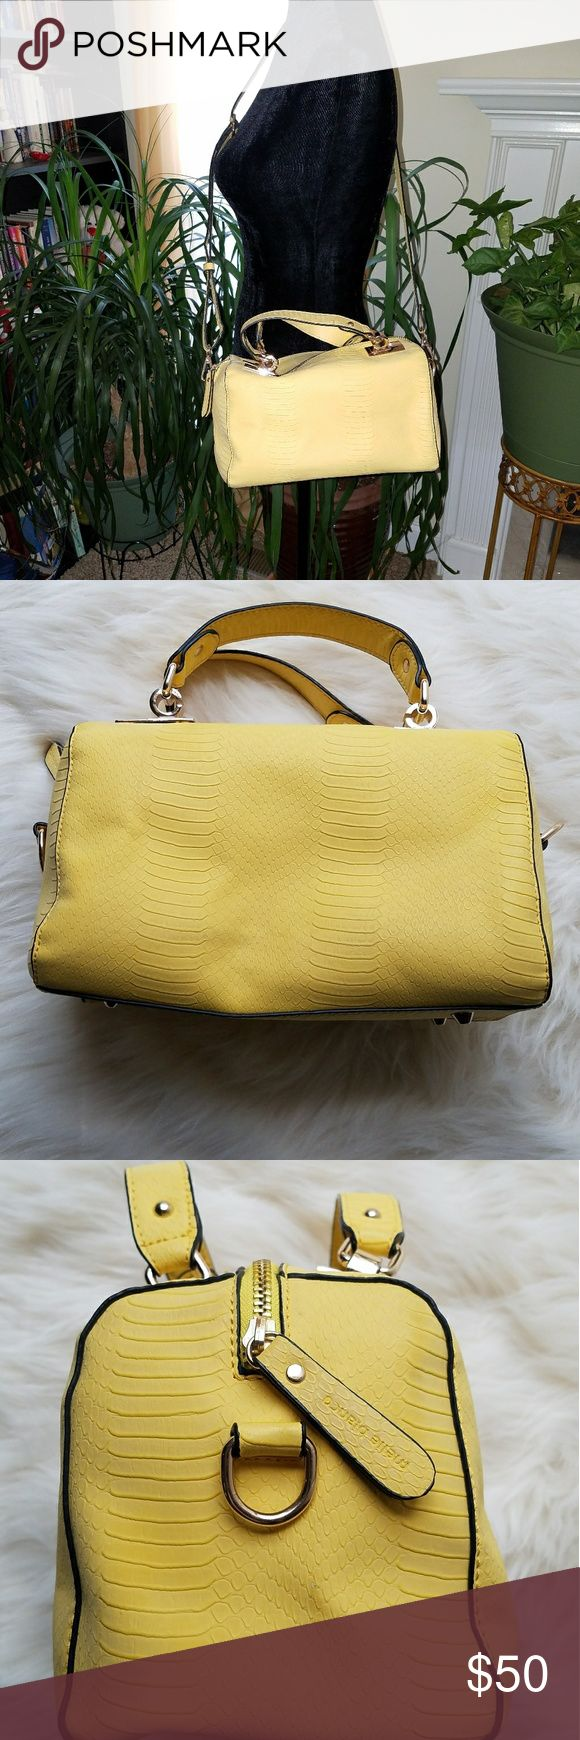 Awesome yellow Melie Bianco reptile print satchel EUC yellow Melie Bianco reptile print satchel No rips, marks, no stains- impeccable inside and out Comes with shoulder strap Melie Bianco Bags Satchels